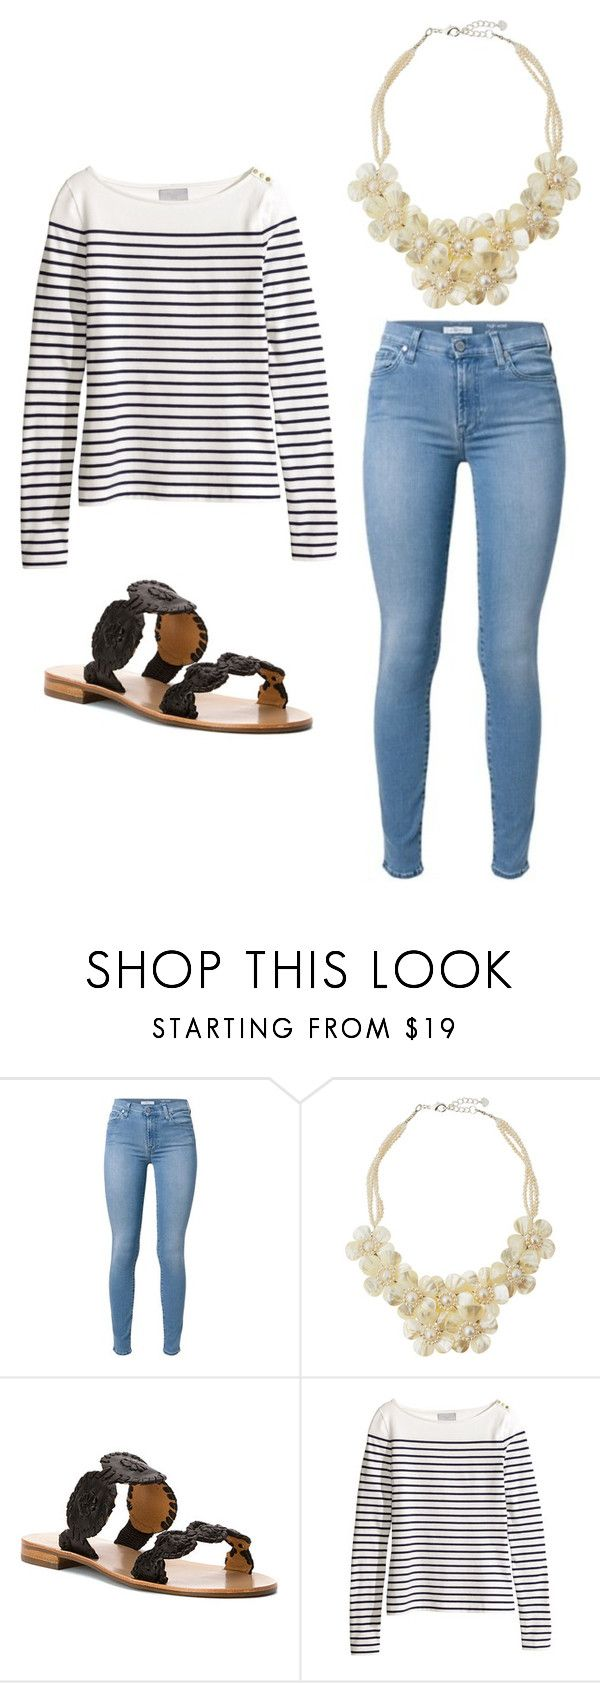 """Outfit Idea by Polyvore Remix"" by polyvore-remix ❤ liked on Polyvore featuring NAKAMOL, Jack Rogers and H&M"